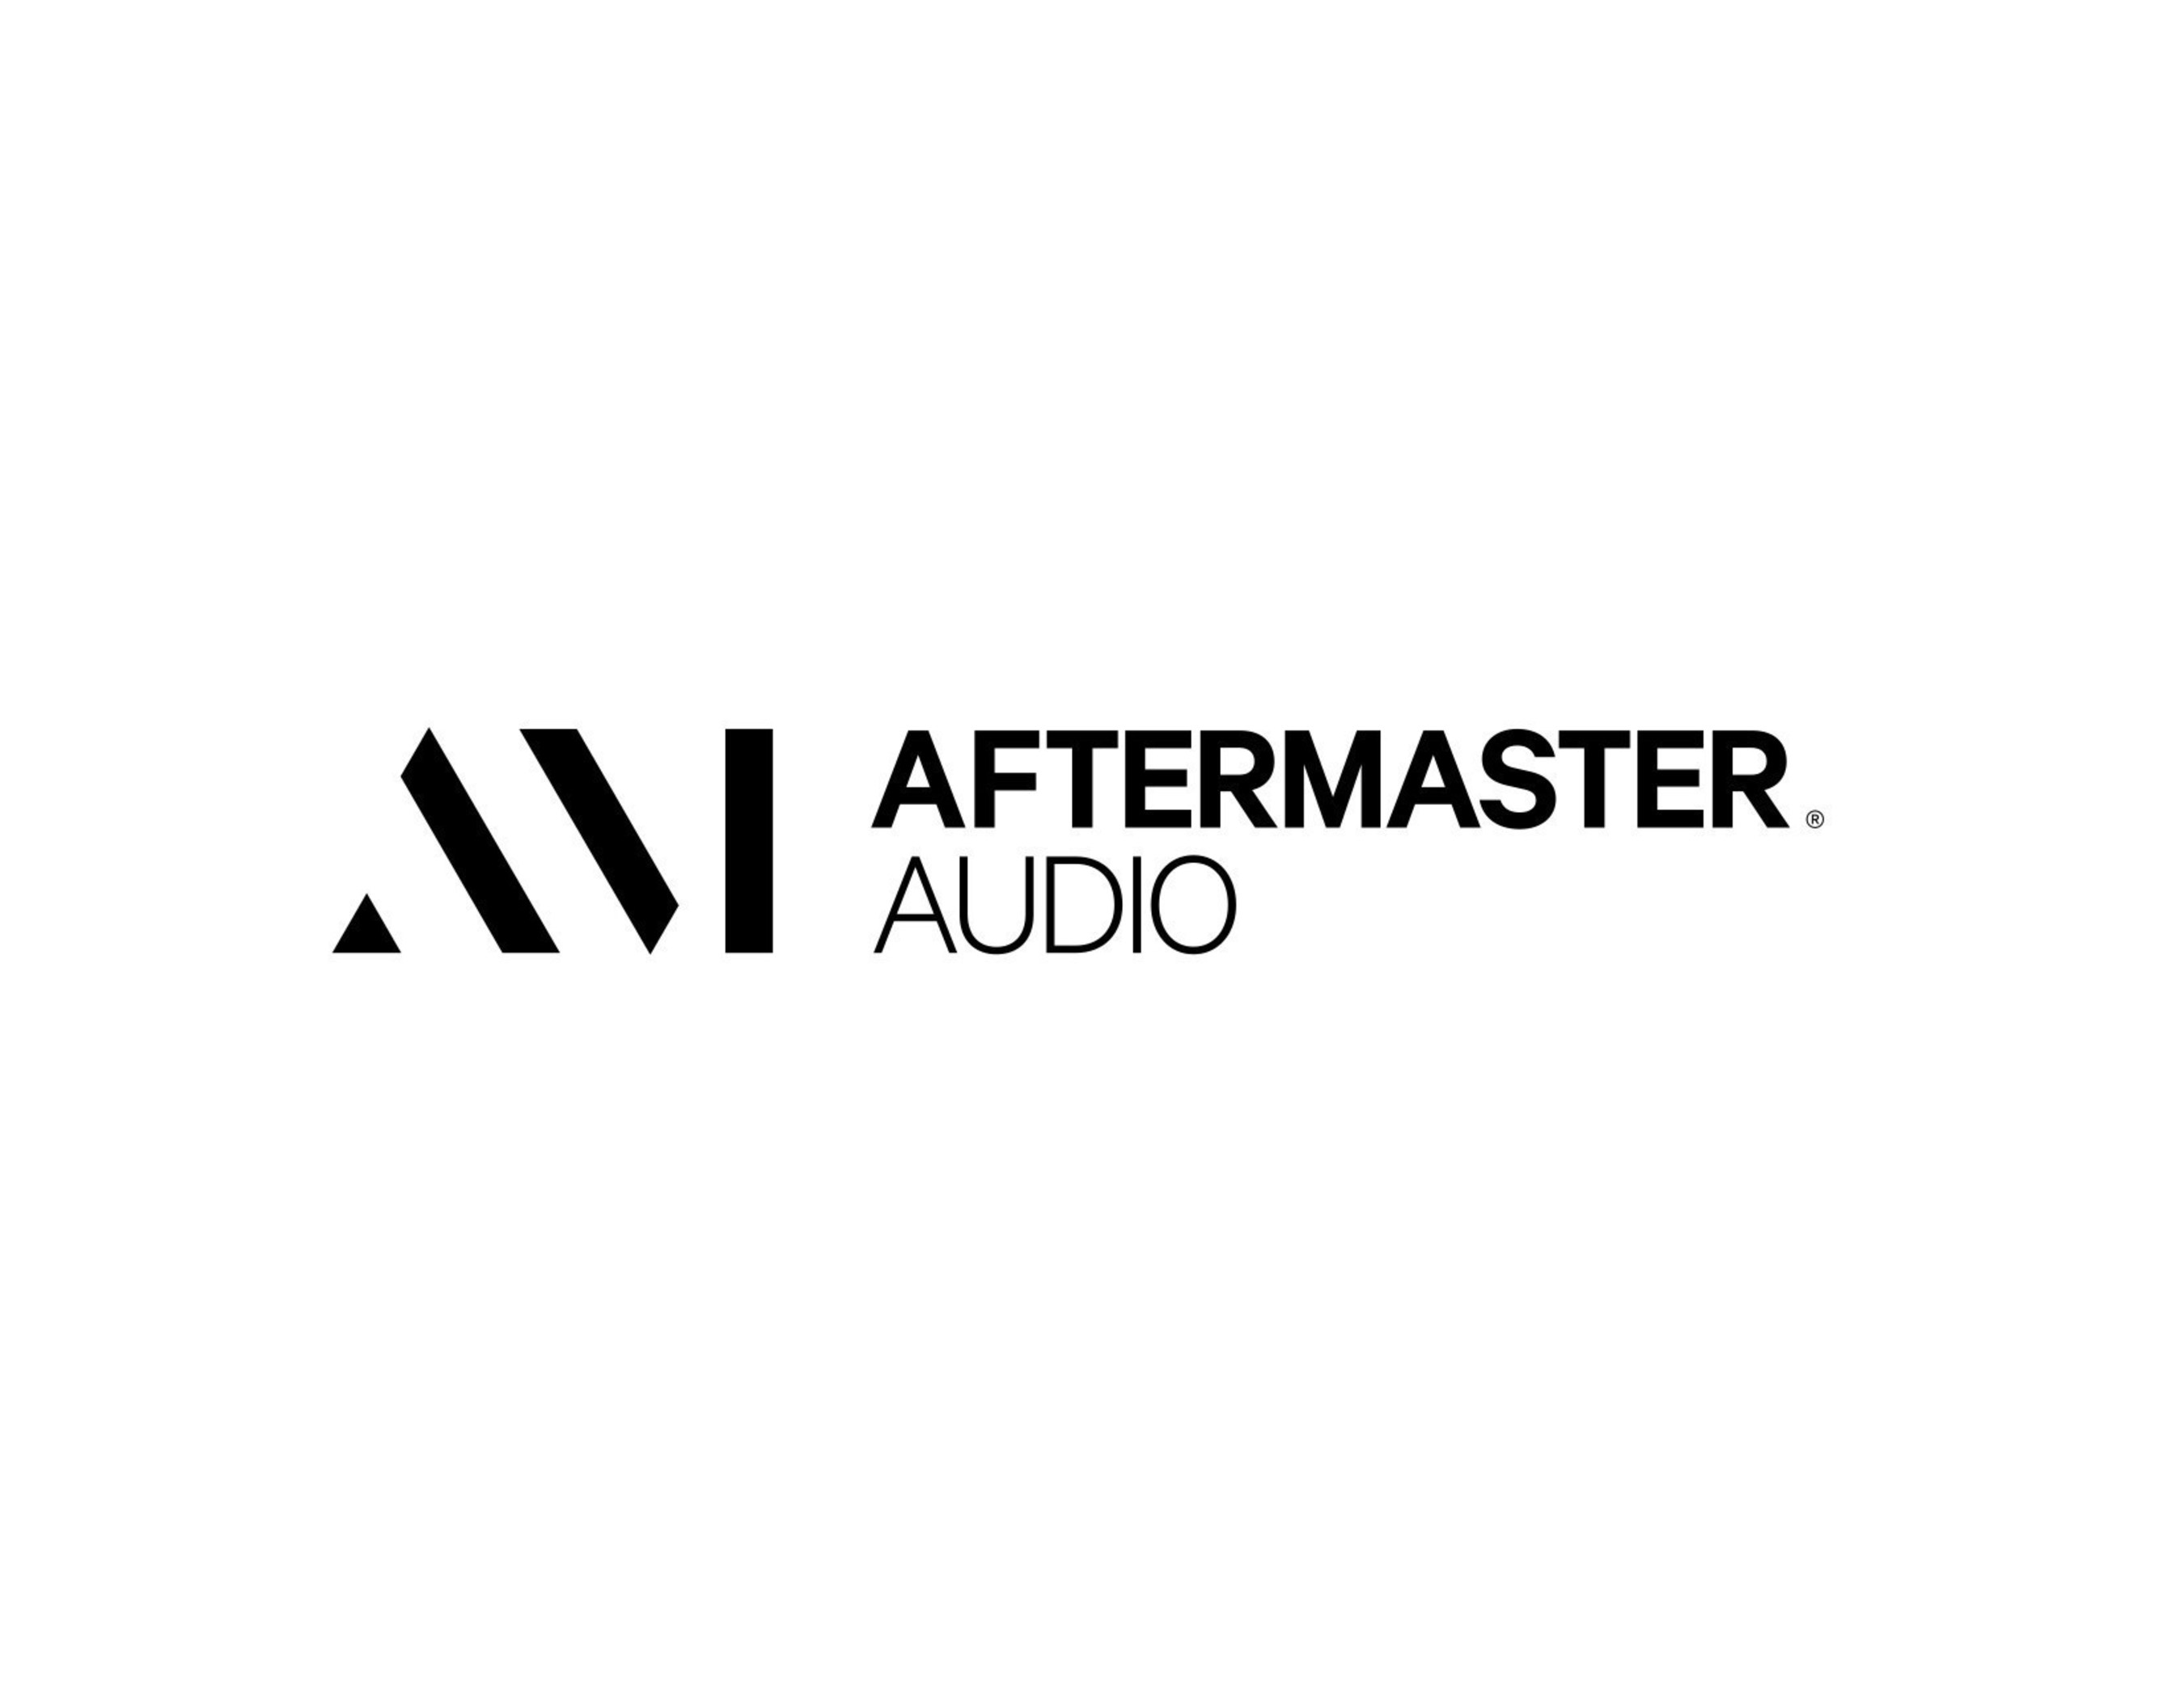 Aftermaster Audio